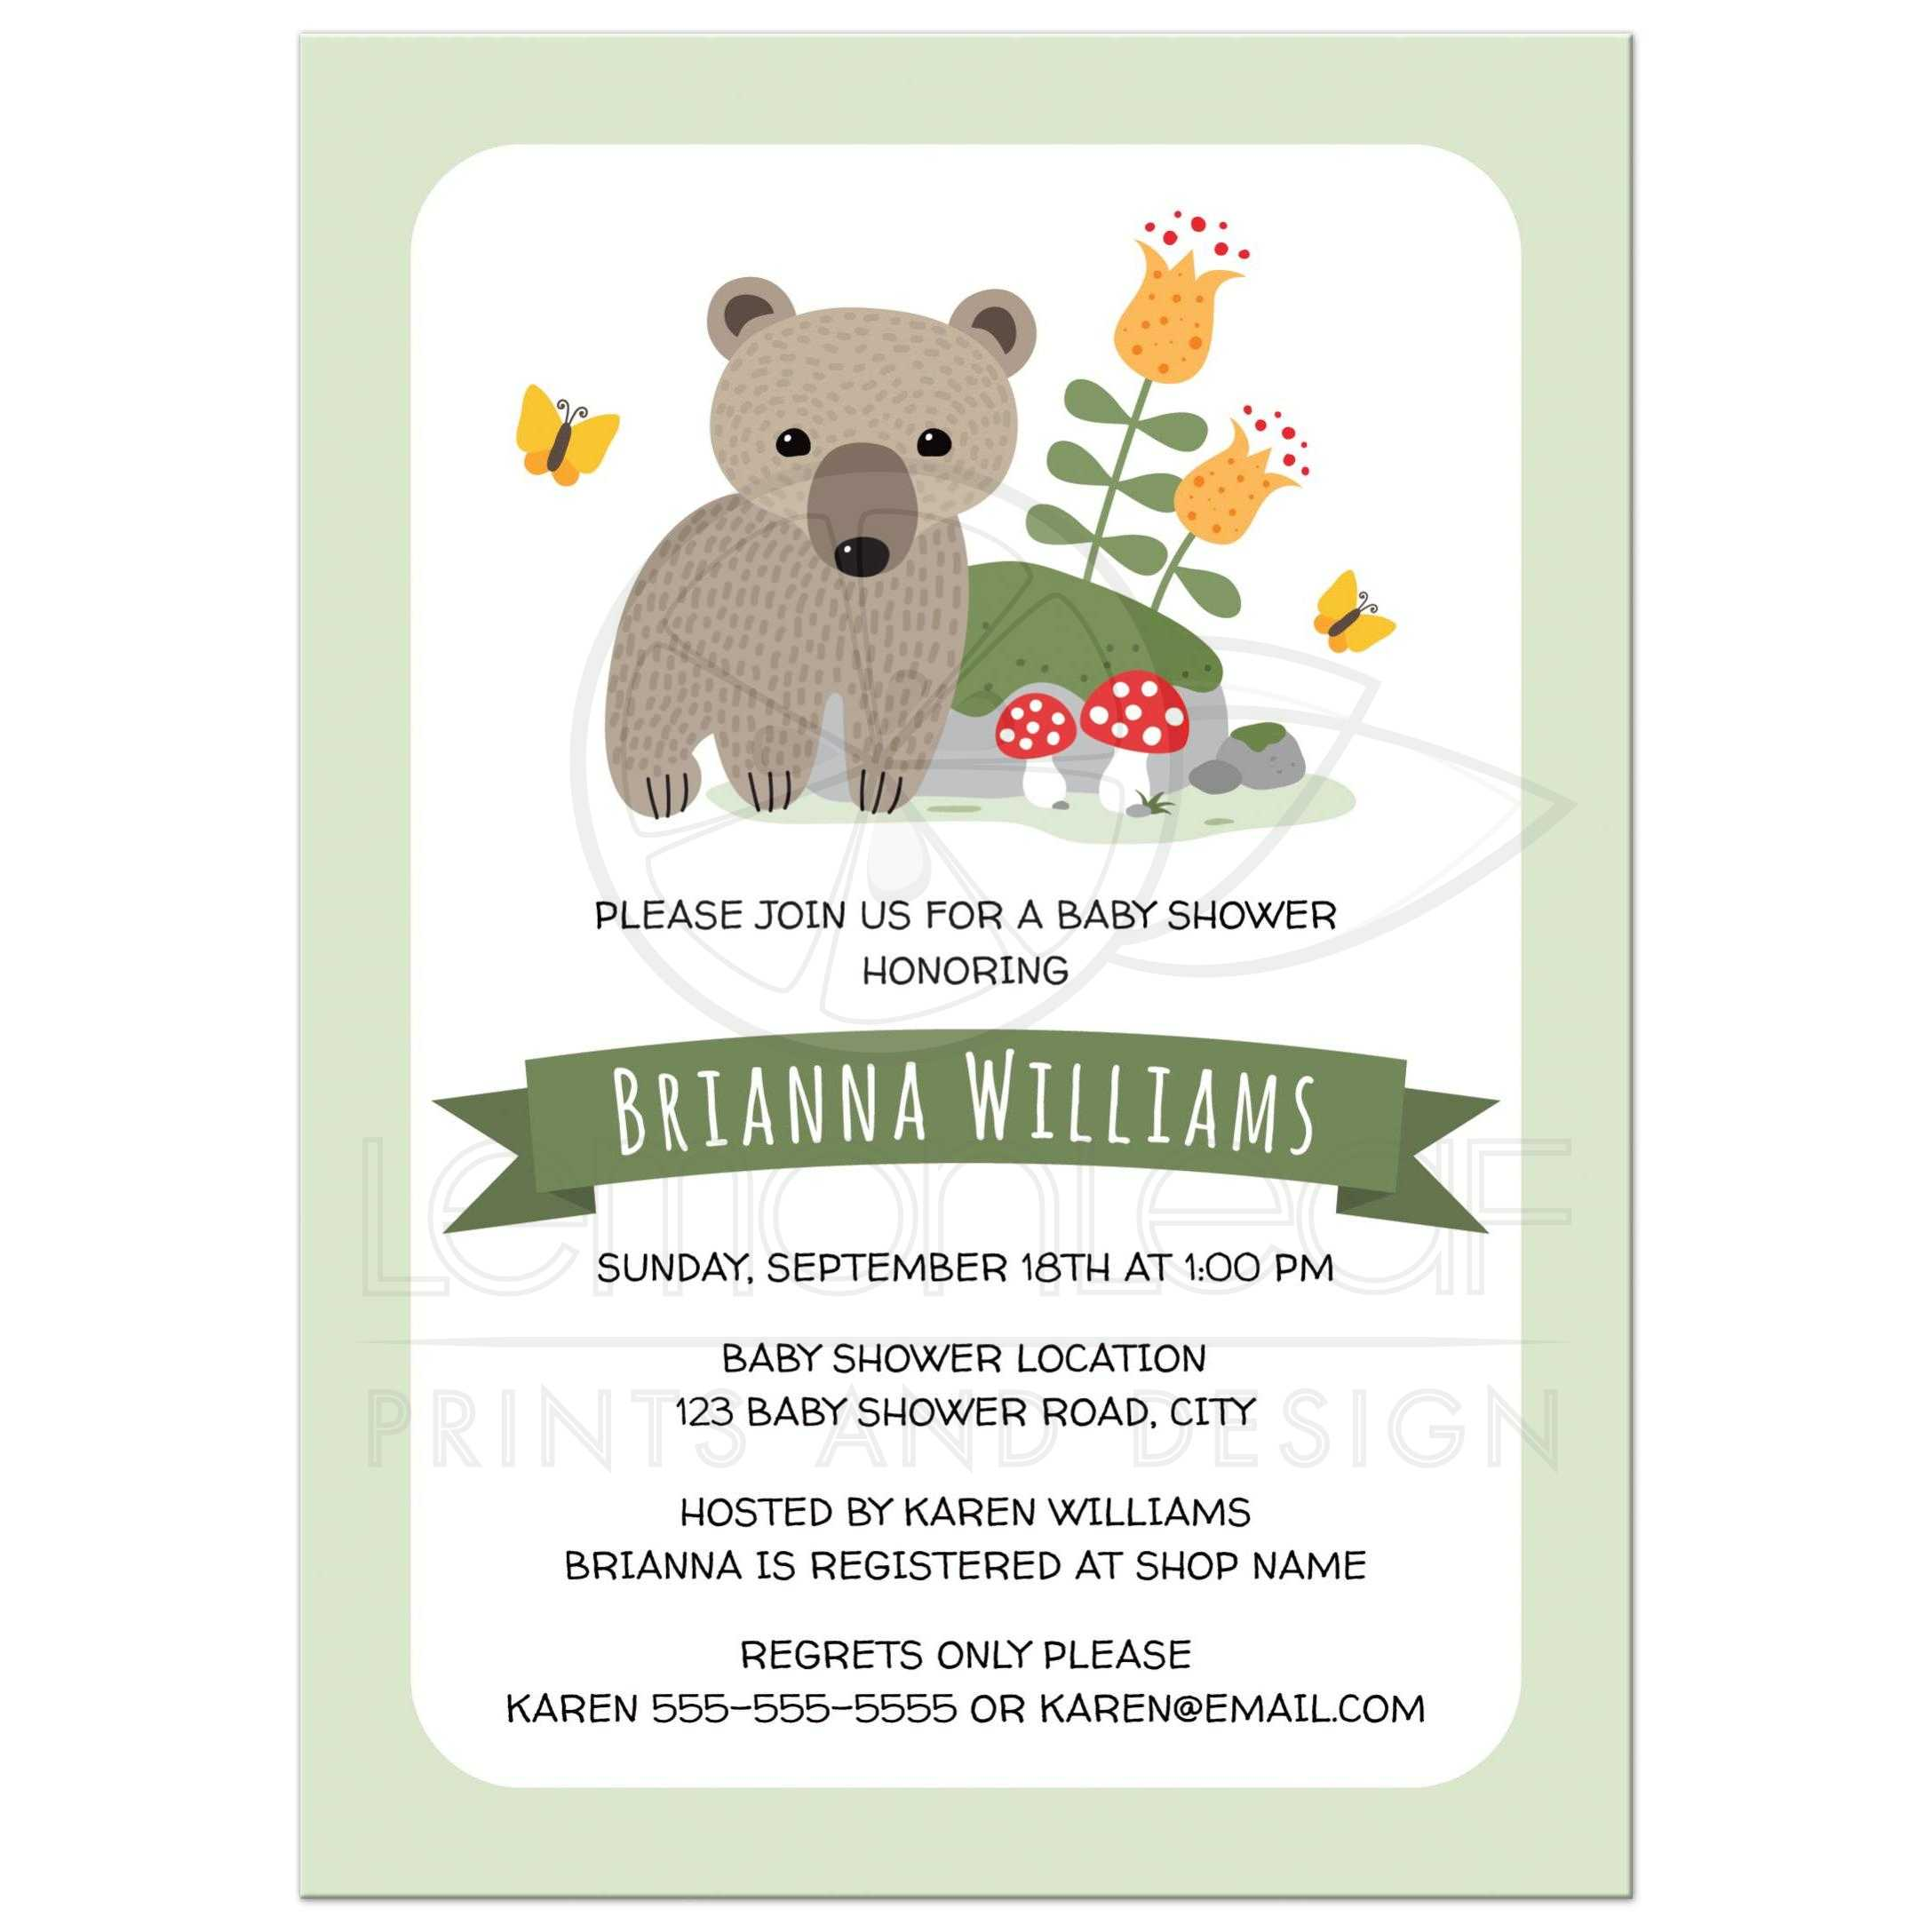 Woodland baby shower invitations with bear cub toadstools flowers